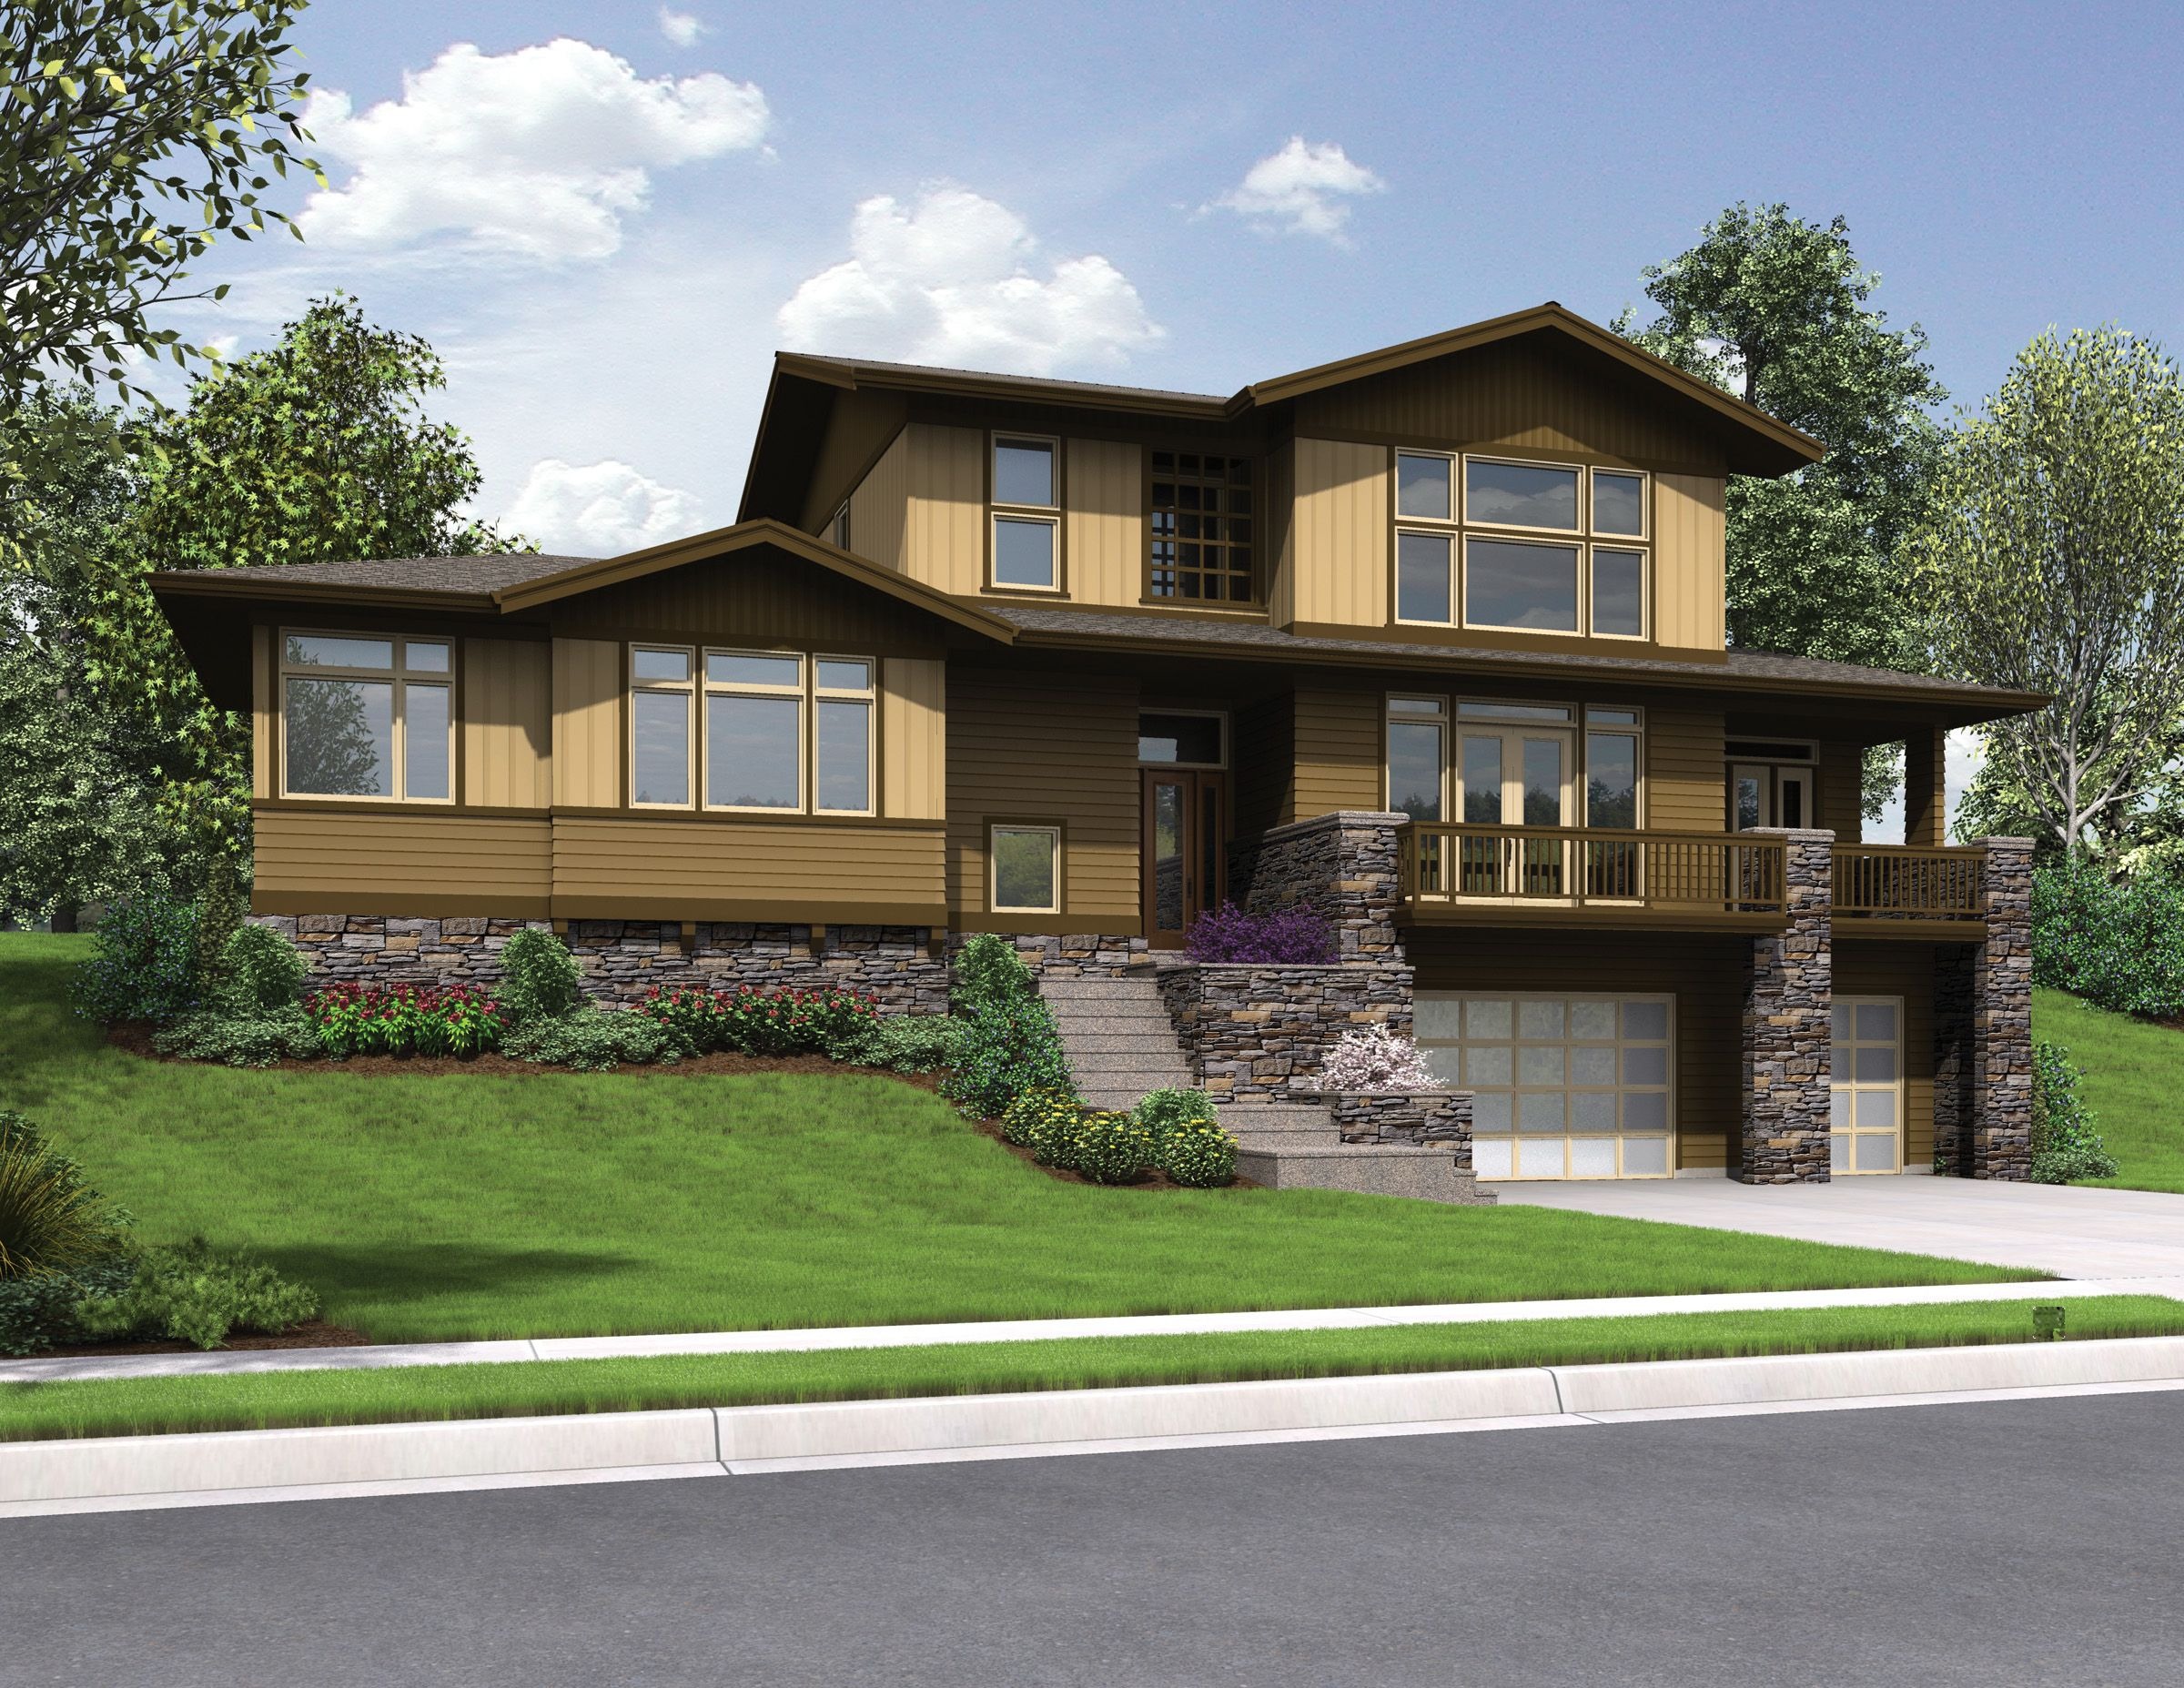 Plan 69520am Craftsman For Uphill Sloping Lot Sloping Lot House Plan Craftsman Floor Plans Craftsman Style House Plans